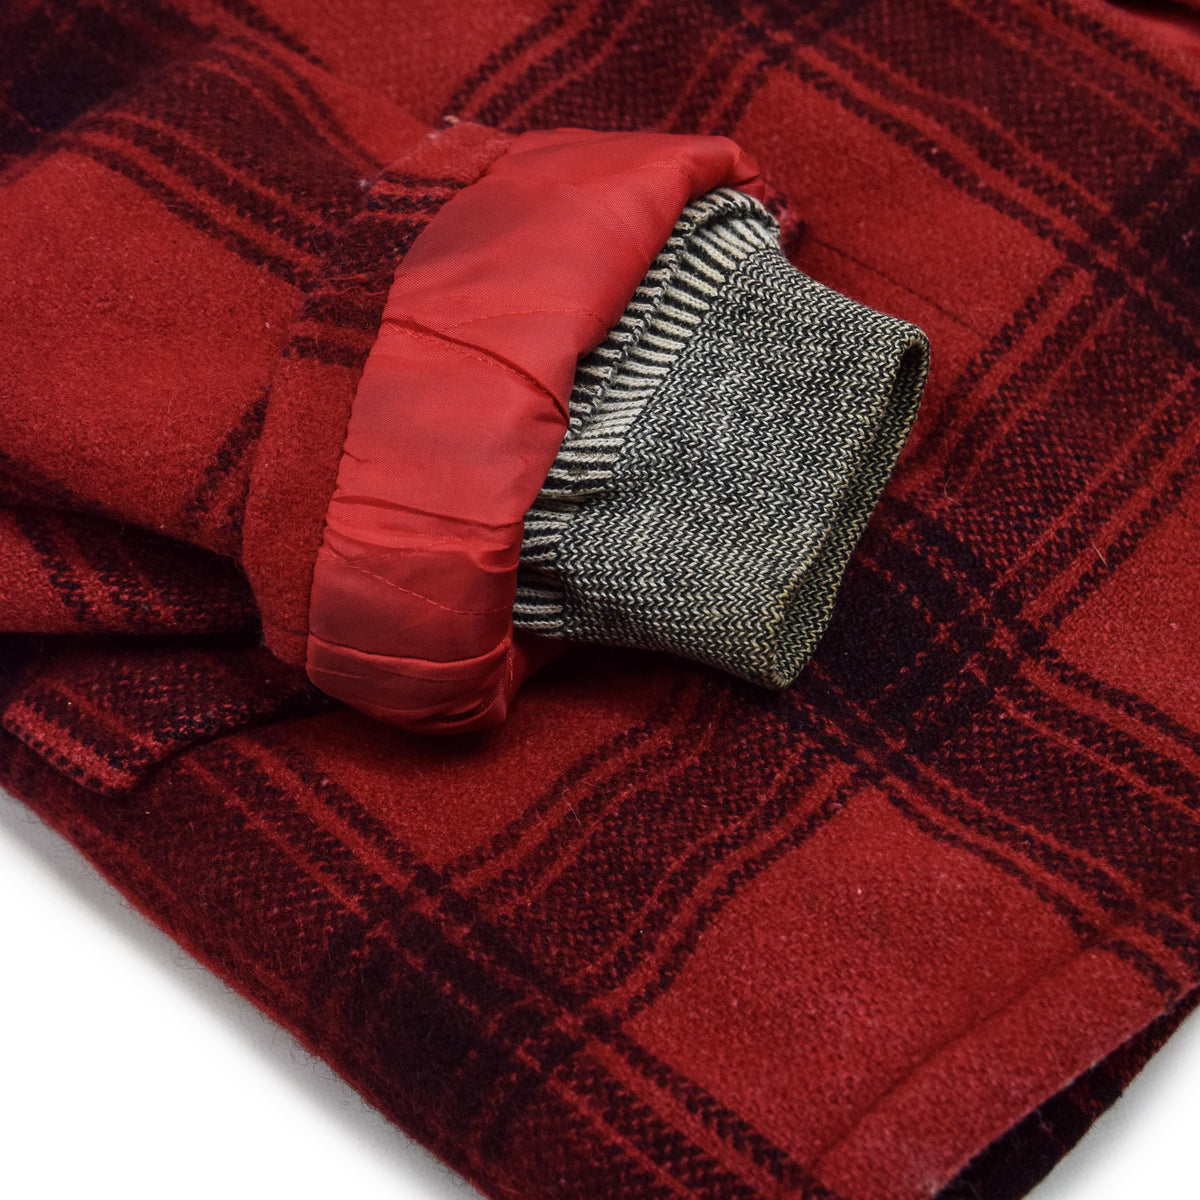 Vintage 40s 50s Penneys Foremost Wool Plaid Hunting Jacket L cuff